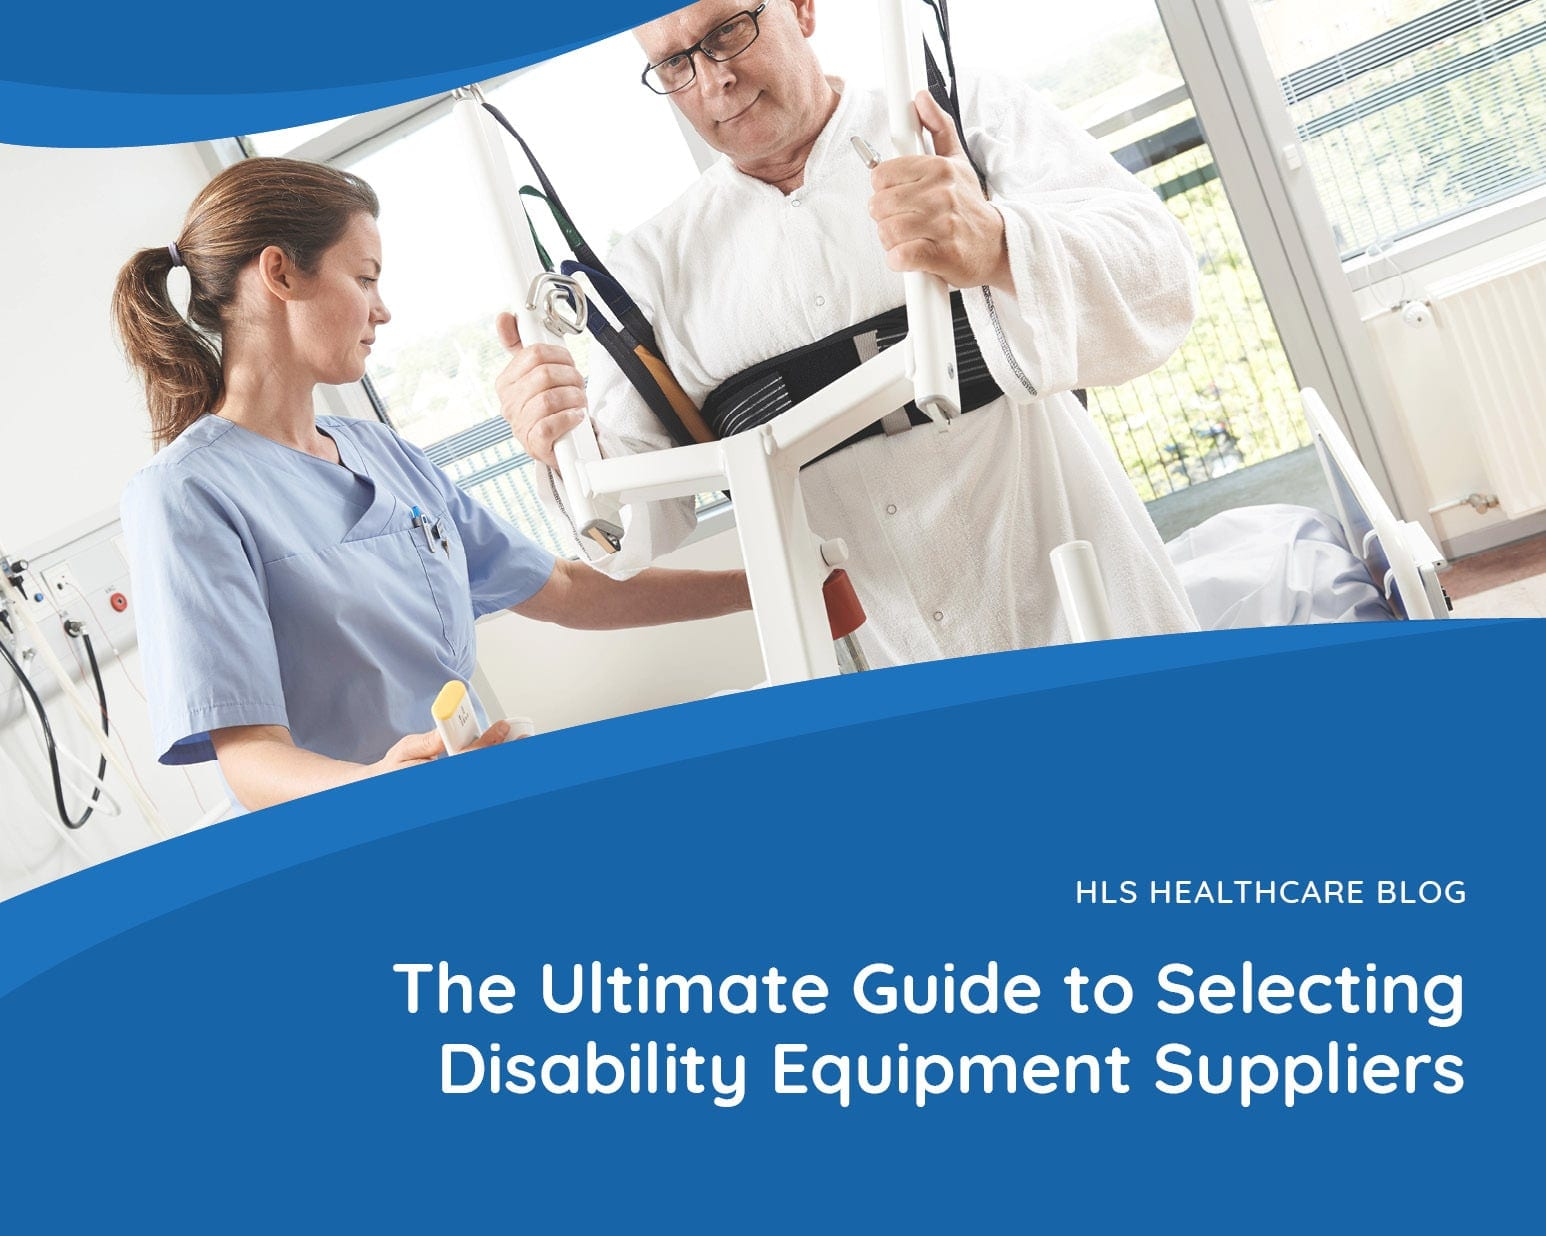 The Ultimate Guide to Selecting Disability Equipment Suppliers